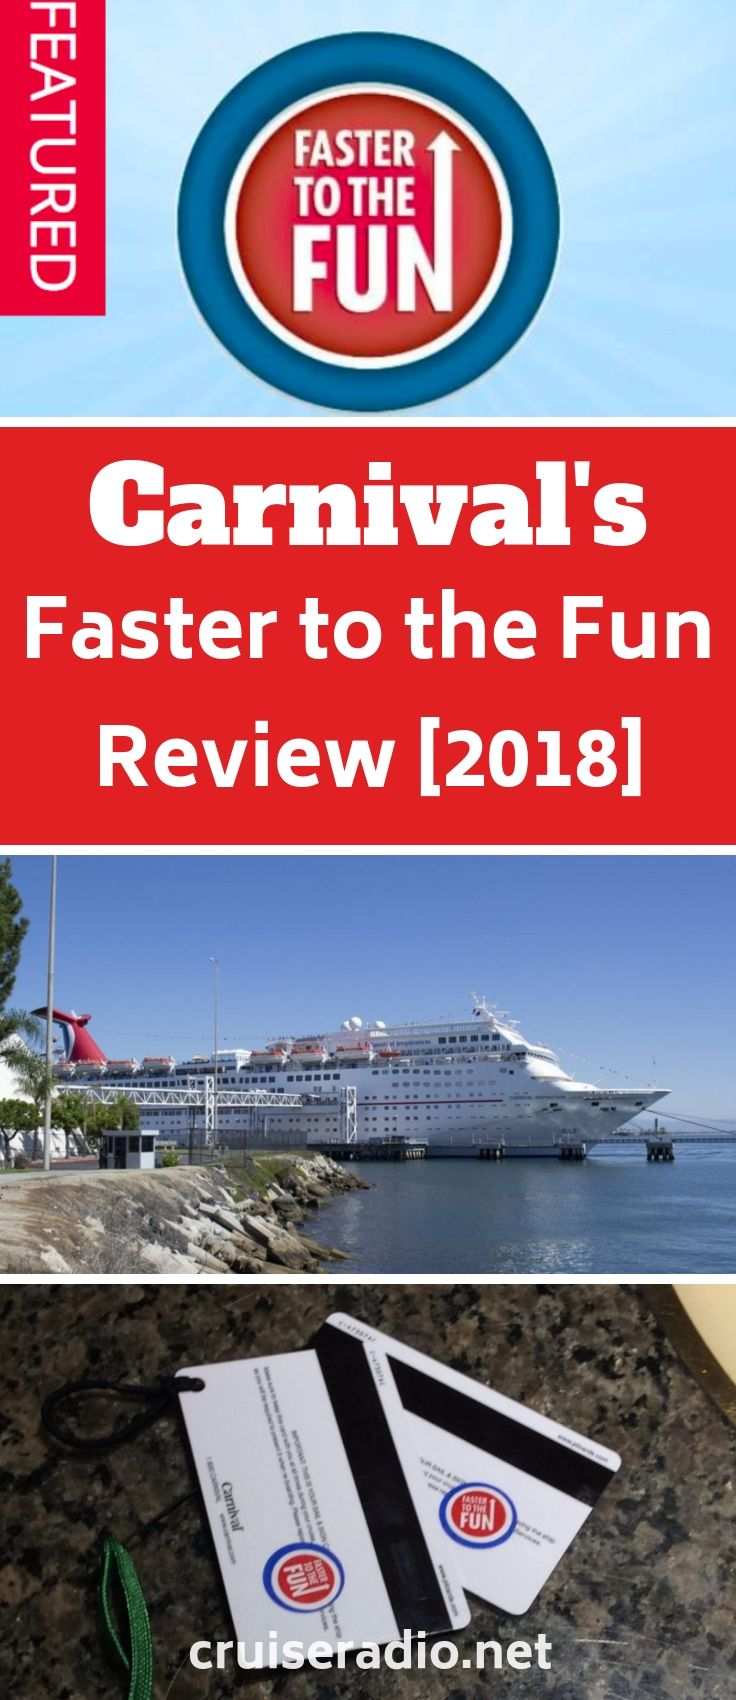 Carnival Cruise Line Faster To The Fun Review (2018